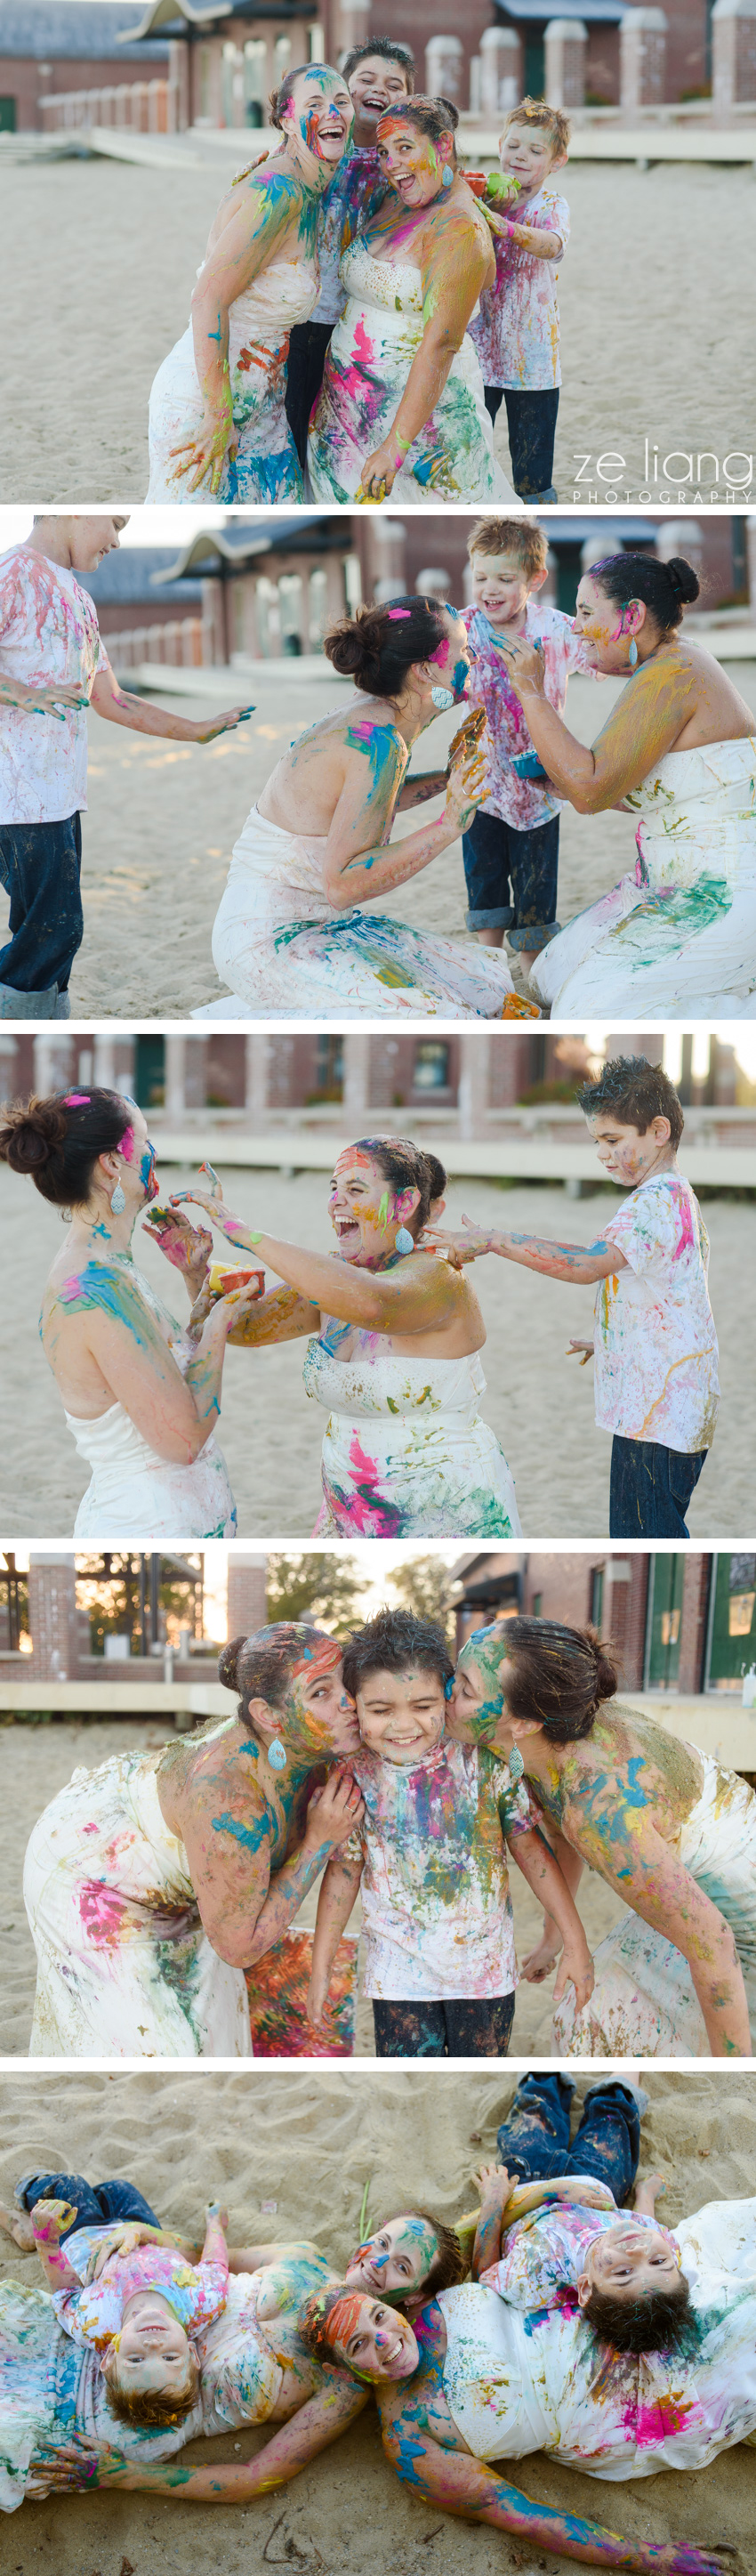 Gay Wedding Paint War Trash The Dress + Family Session On The Beach #cute #